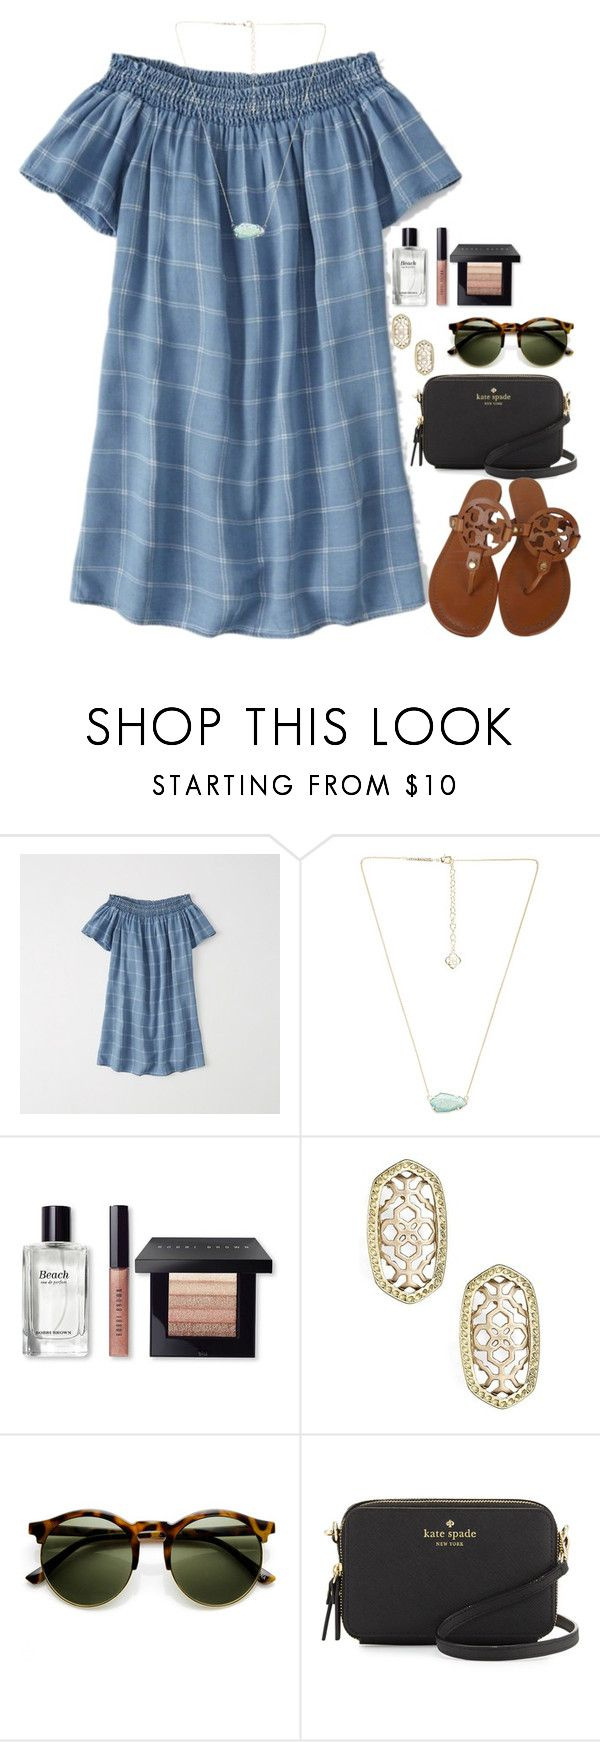 """Going out to dinner:)"" by flroasburn ❤ liked on Polyvore featuring Abercrombie & Fitch, Kendra Scott, Bobbi Brown Cosmetics, Kate Spade and Tory Burch"